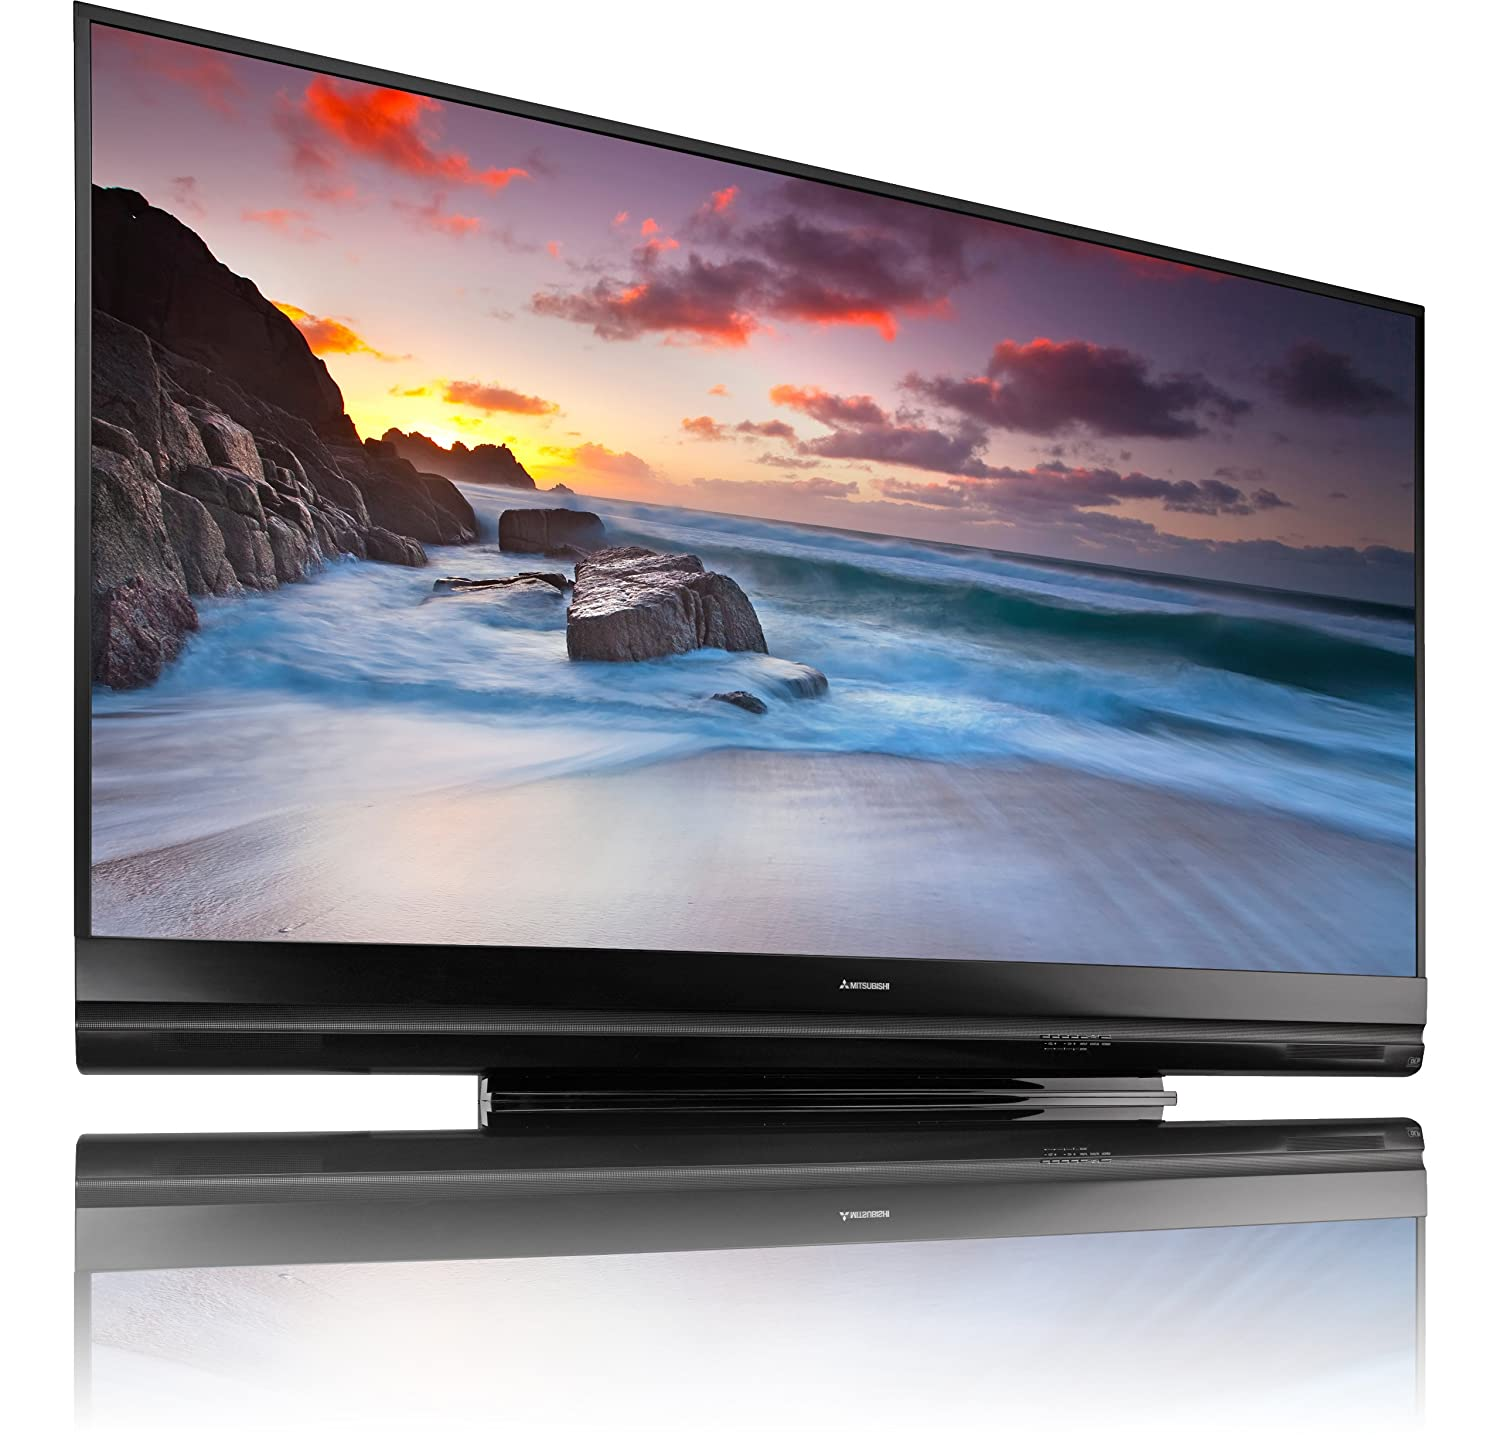 Mitsubishi WD-73740 73-Inch 1080p Projection TV (2011 Model): Amazon